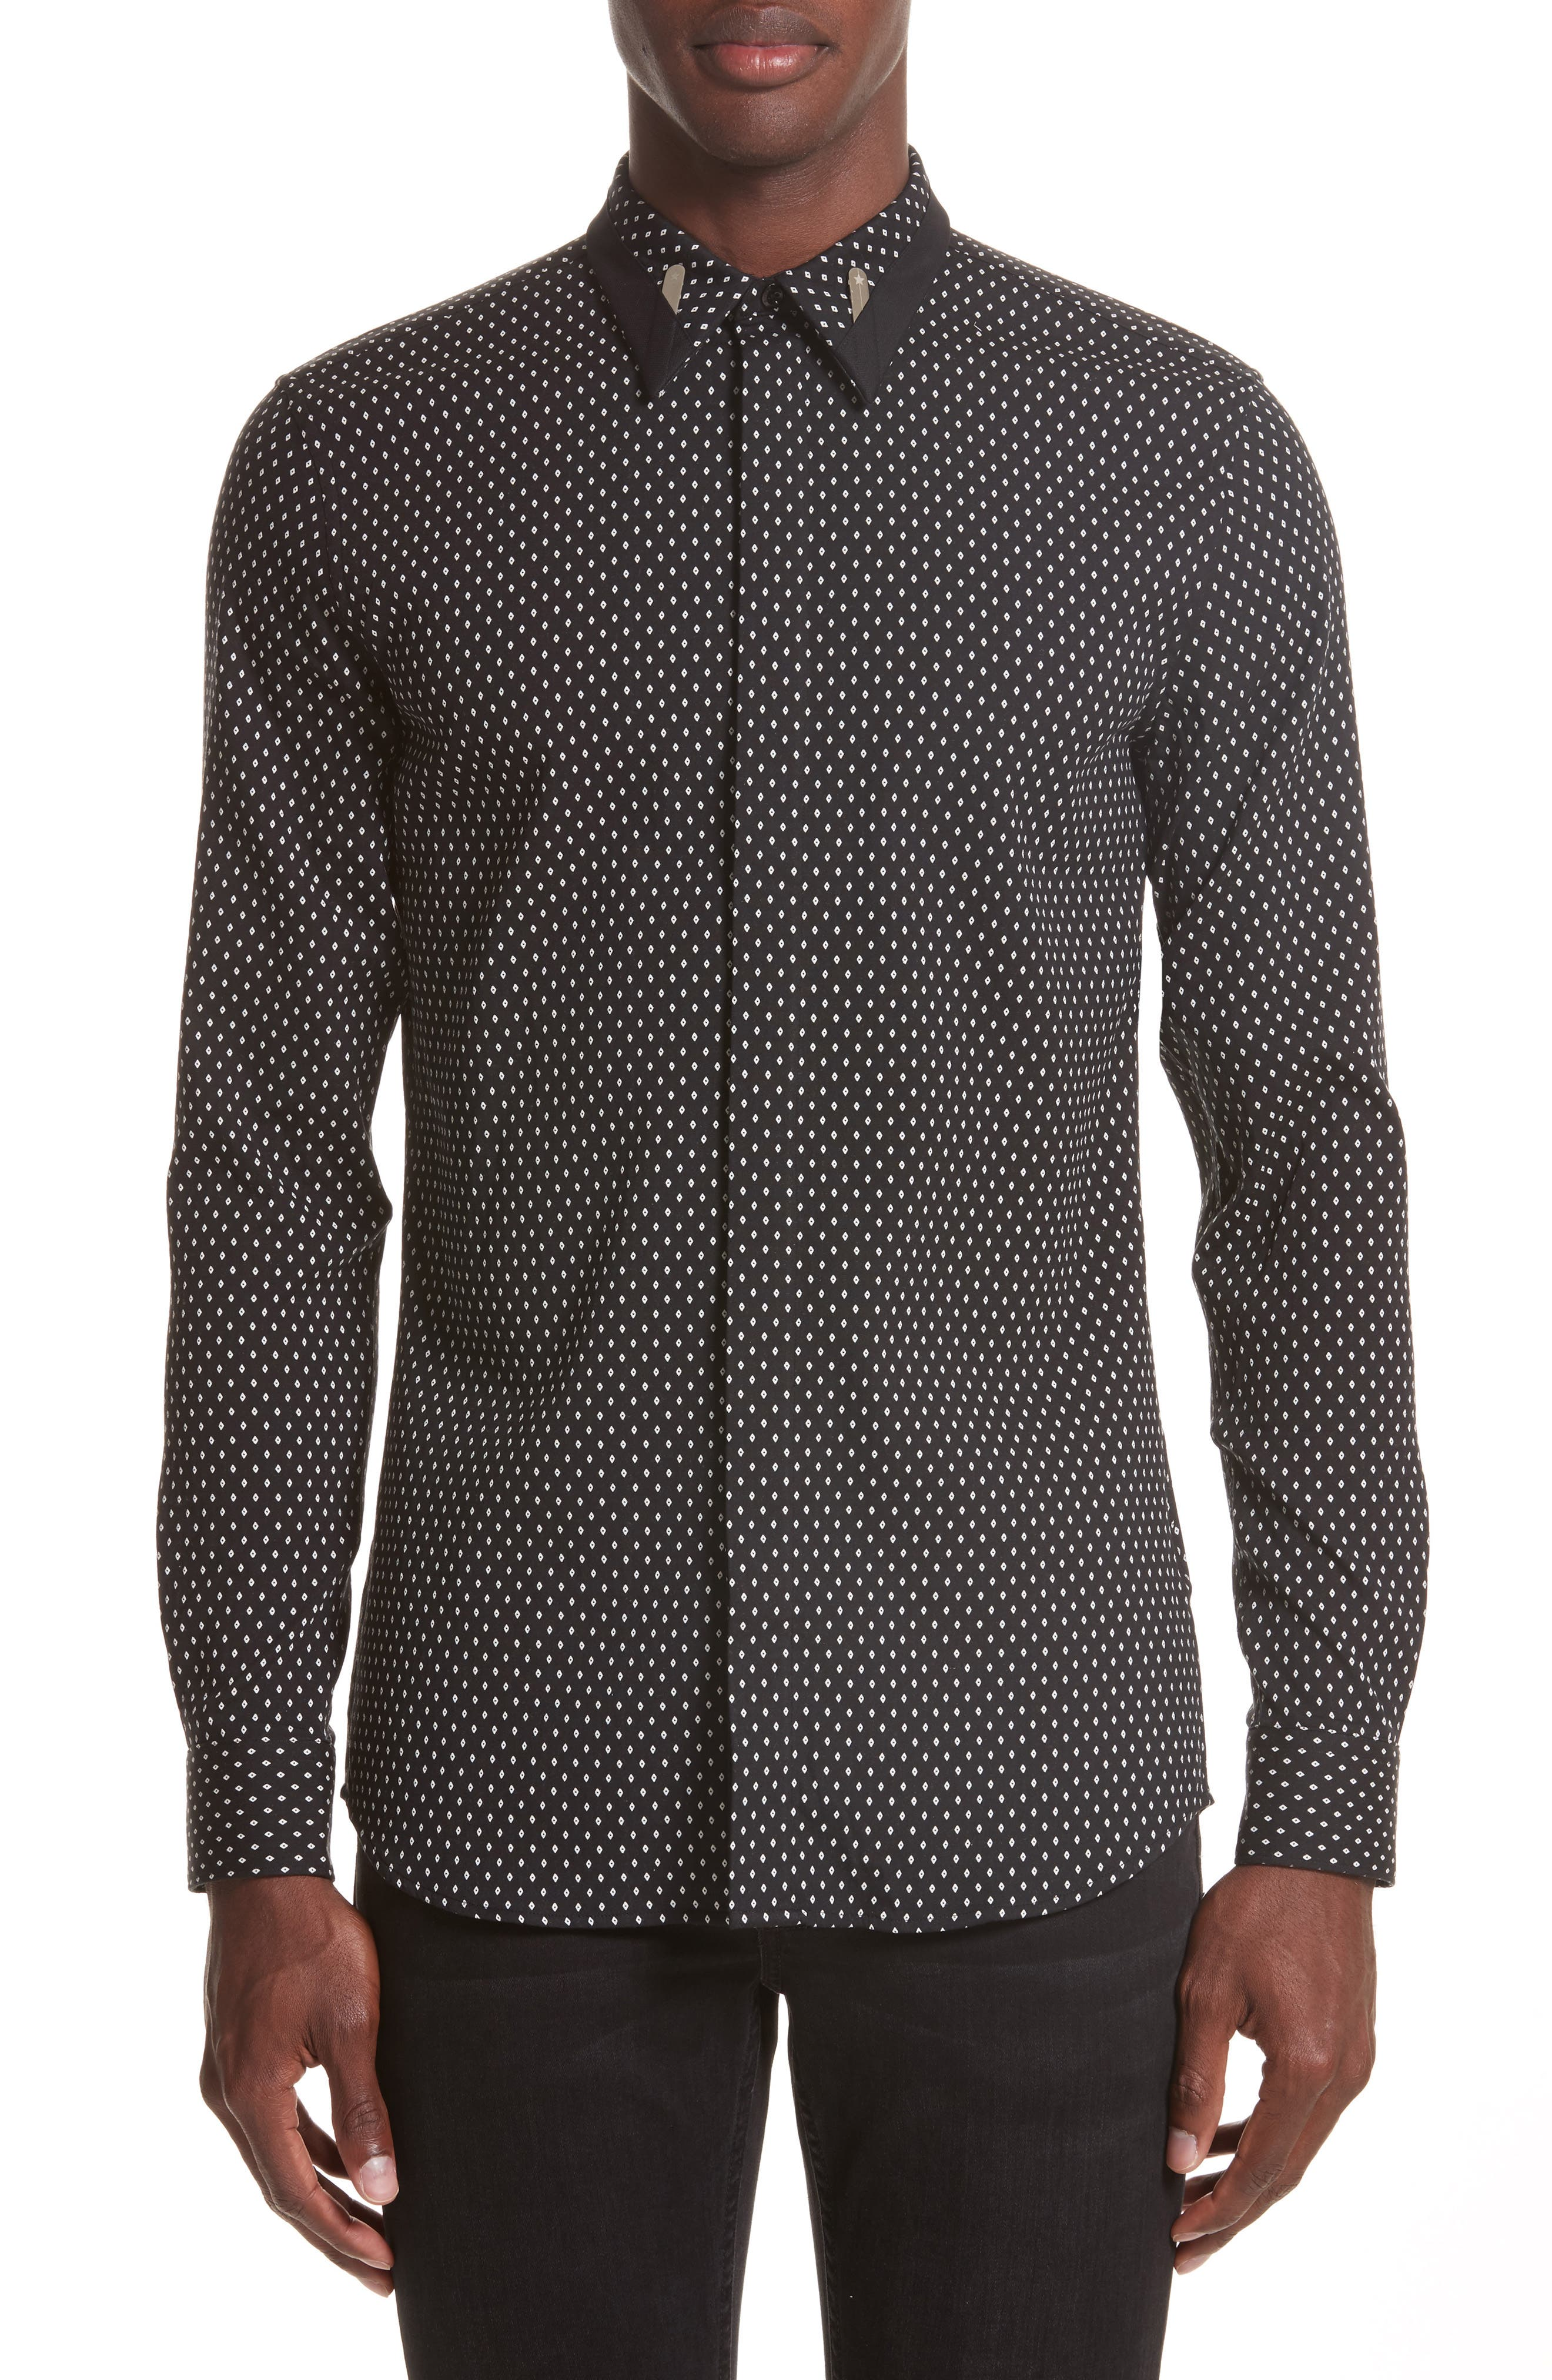 Givenchy Jacquard Collar Stay Shirt